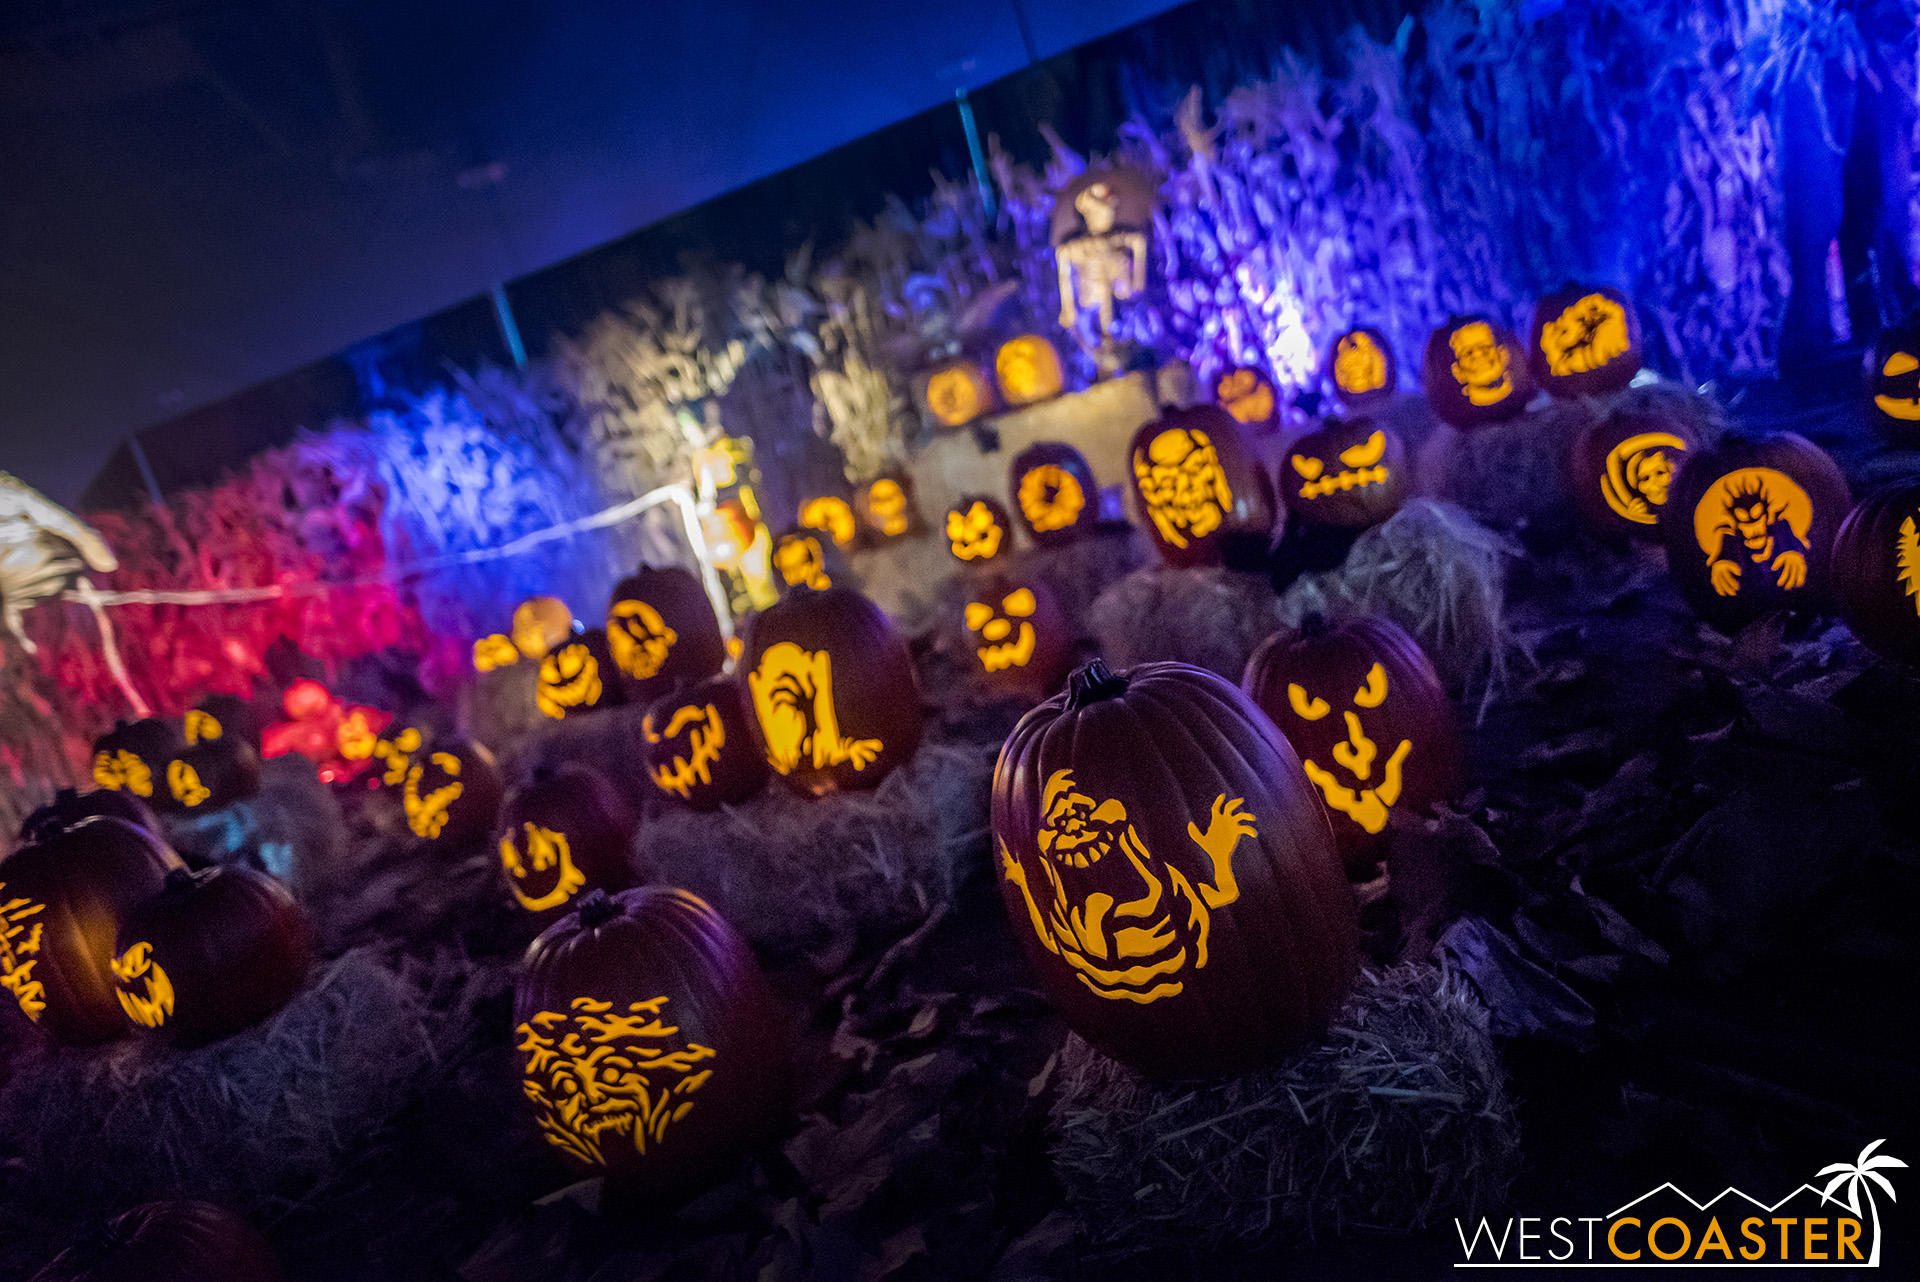 Wicked Pumpkin Hollow   was back again this year at Midsummer.